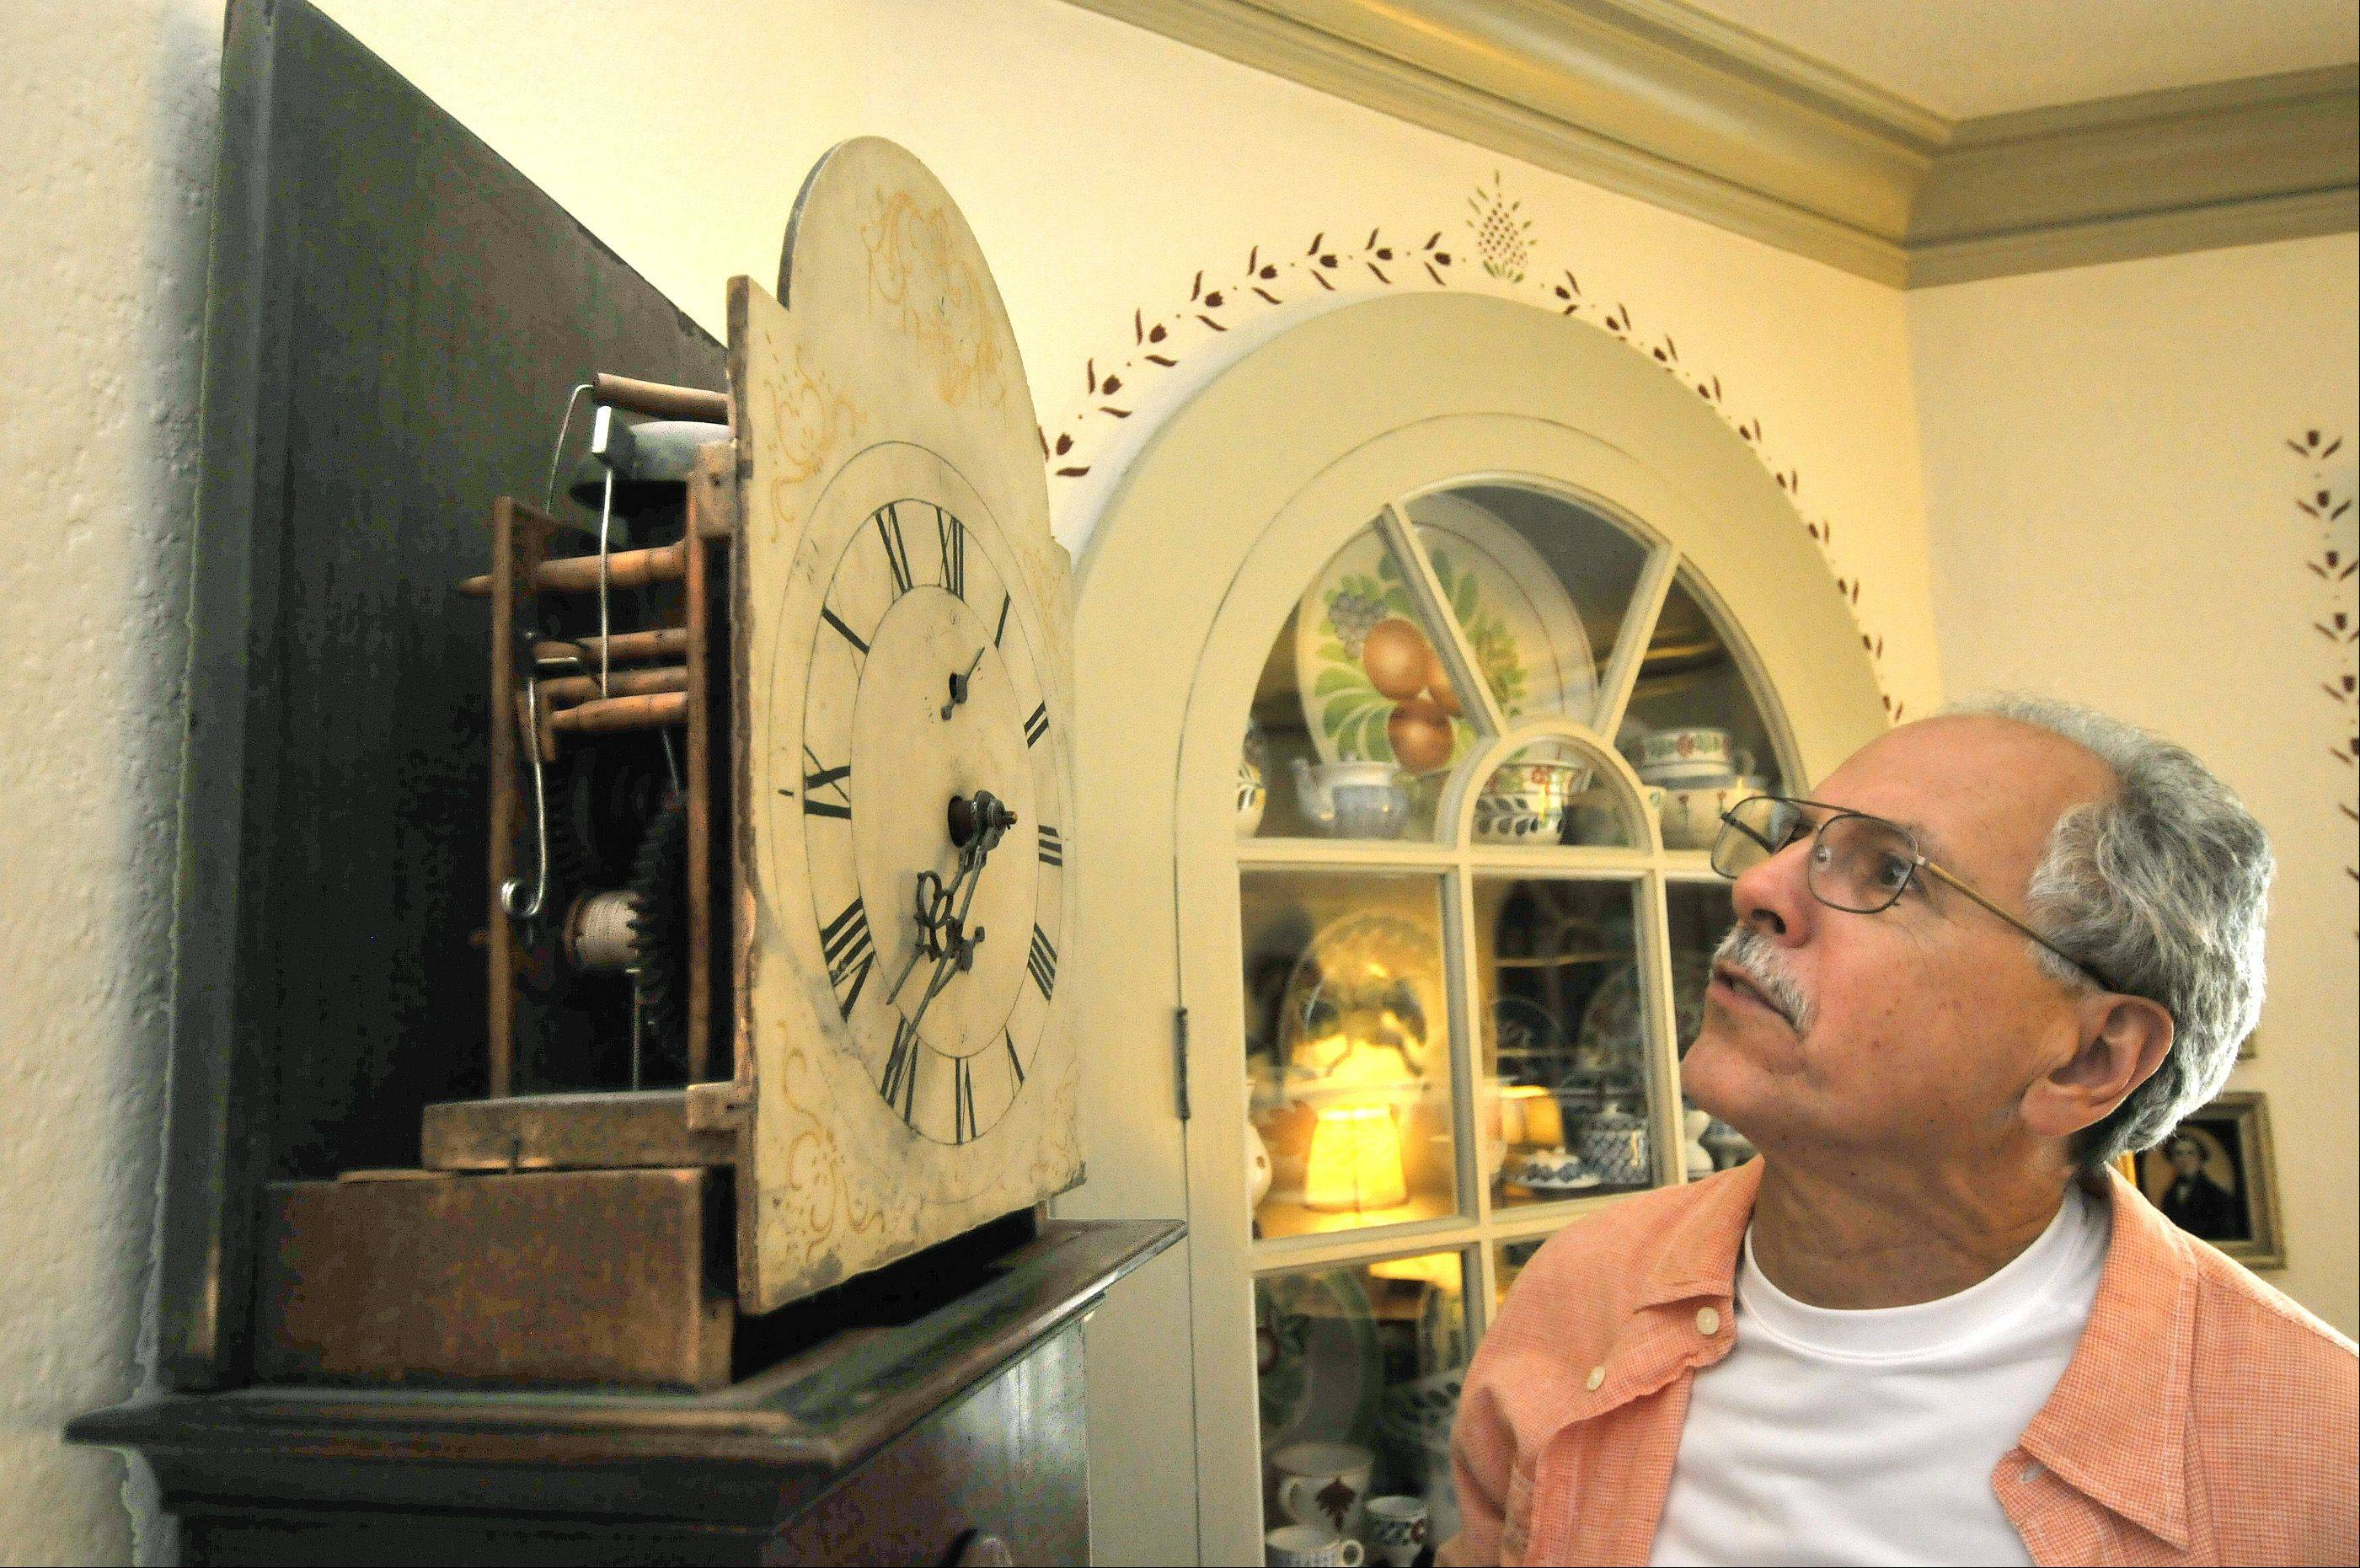 The Larsens have collected more antiques than they can count, including this clock with a wooden mechanism.